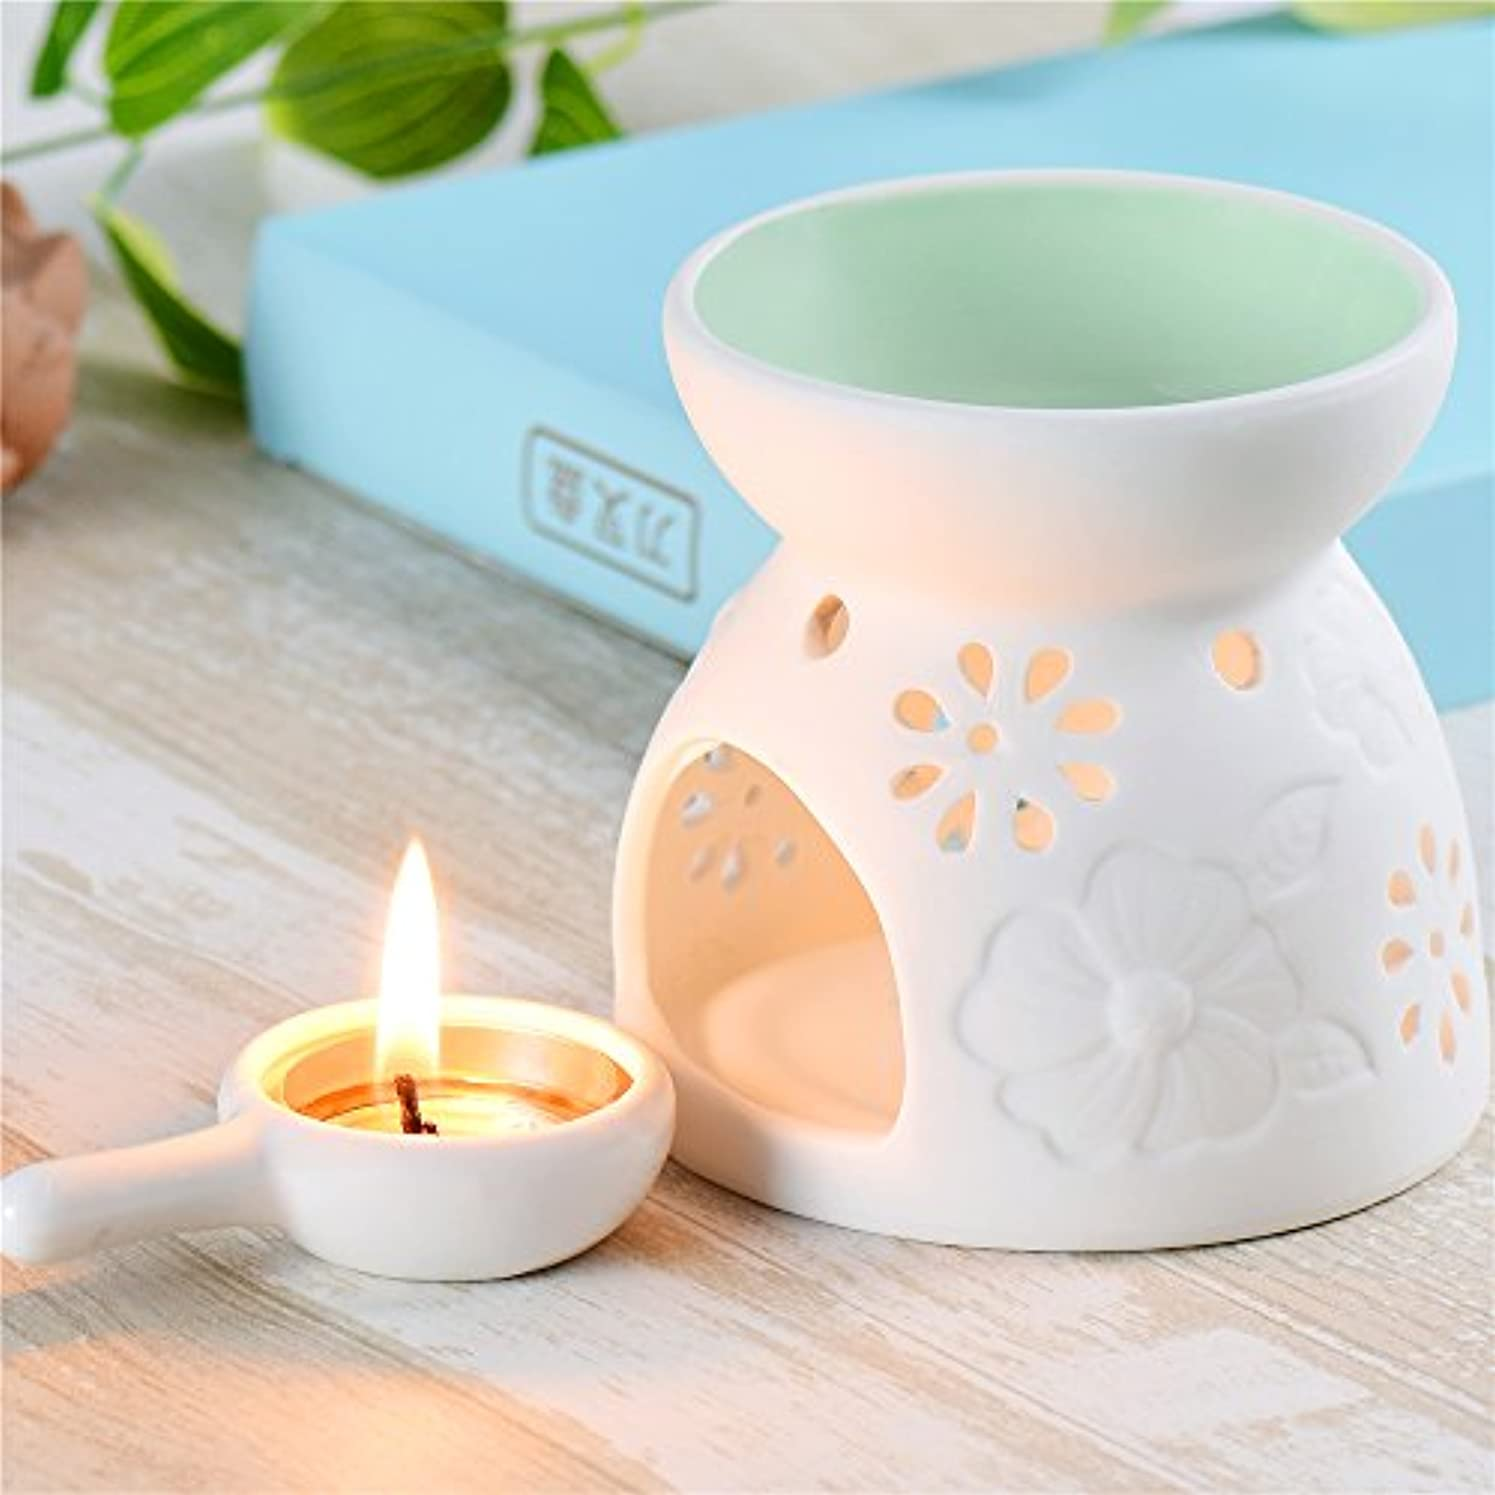 なんでも折る現像セラミックEssential Oil Warmer : Great for瞑想、アロマセラピー – Fragrance Diffuser使用with Tea Lights – Ideal For Wedding Gifts...